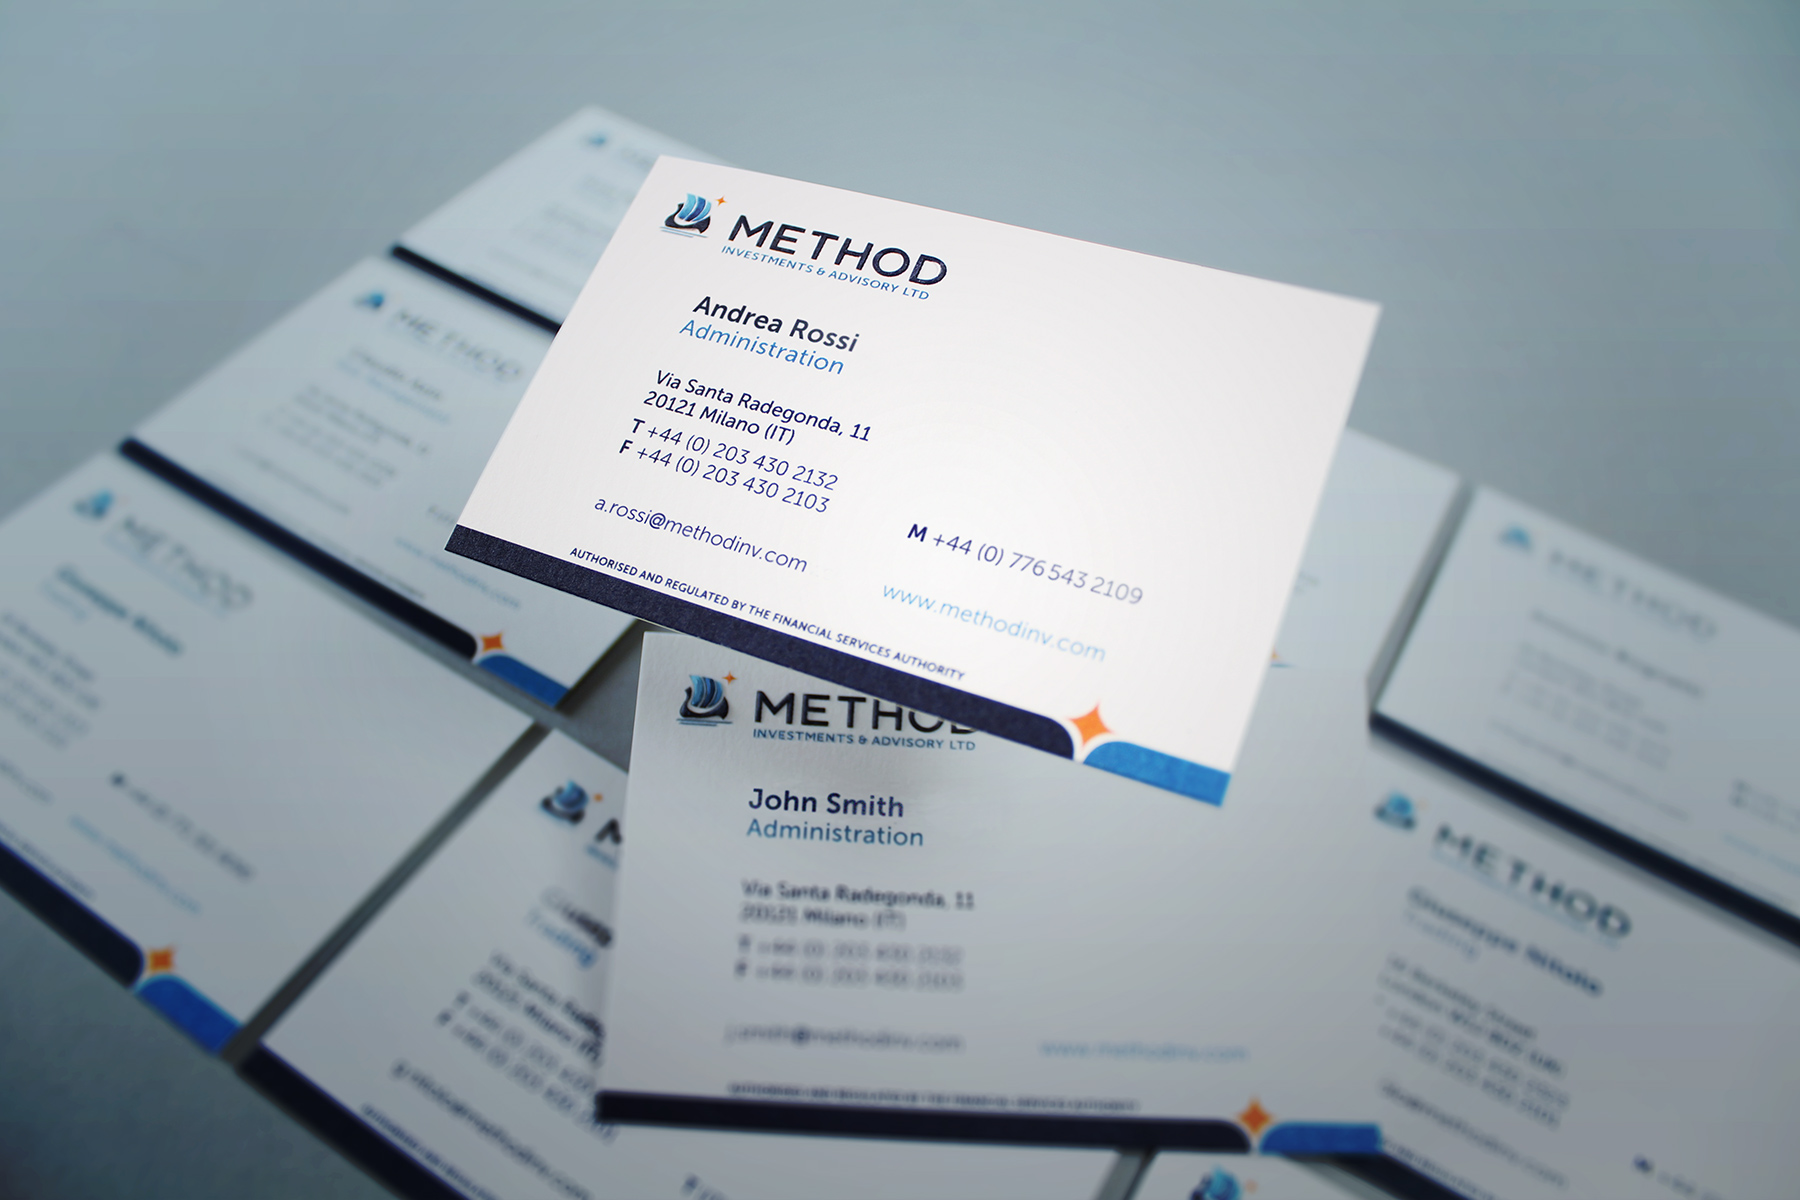 The identity also simplifies into a clean look and feel applied to stationery and corporate correspondence